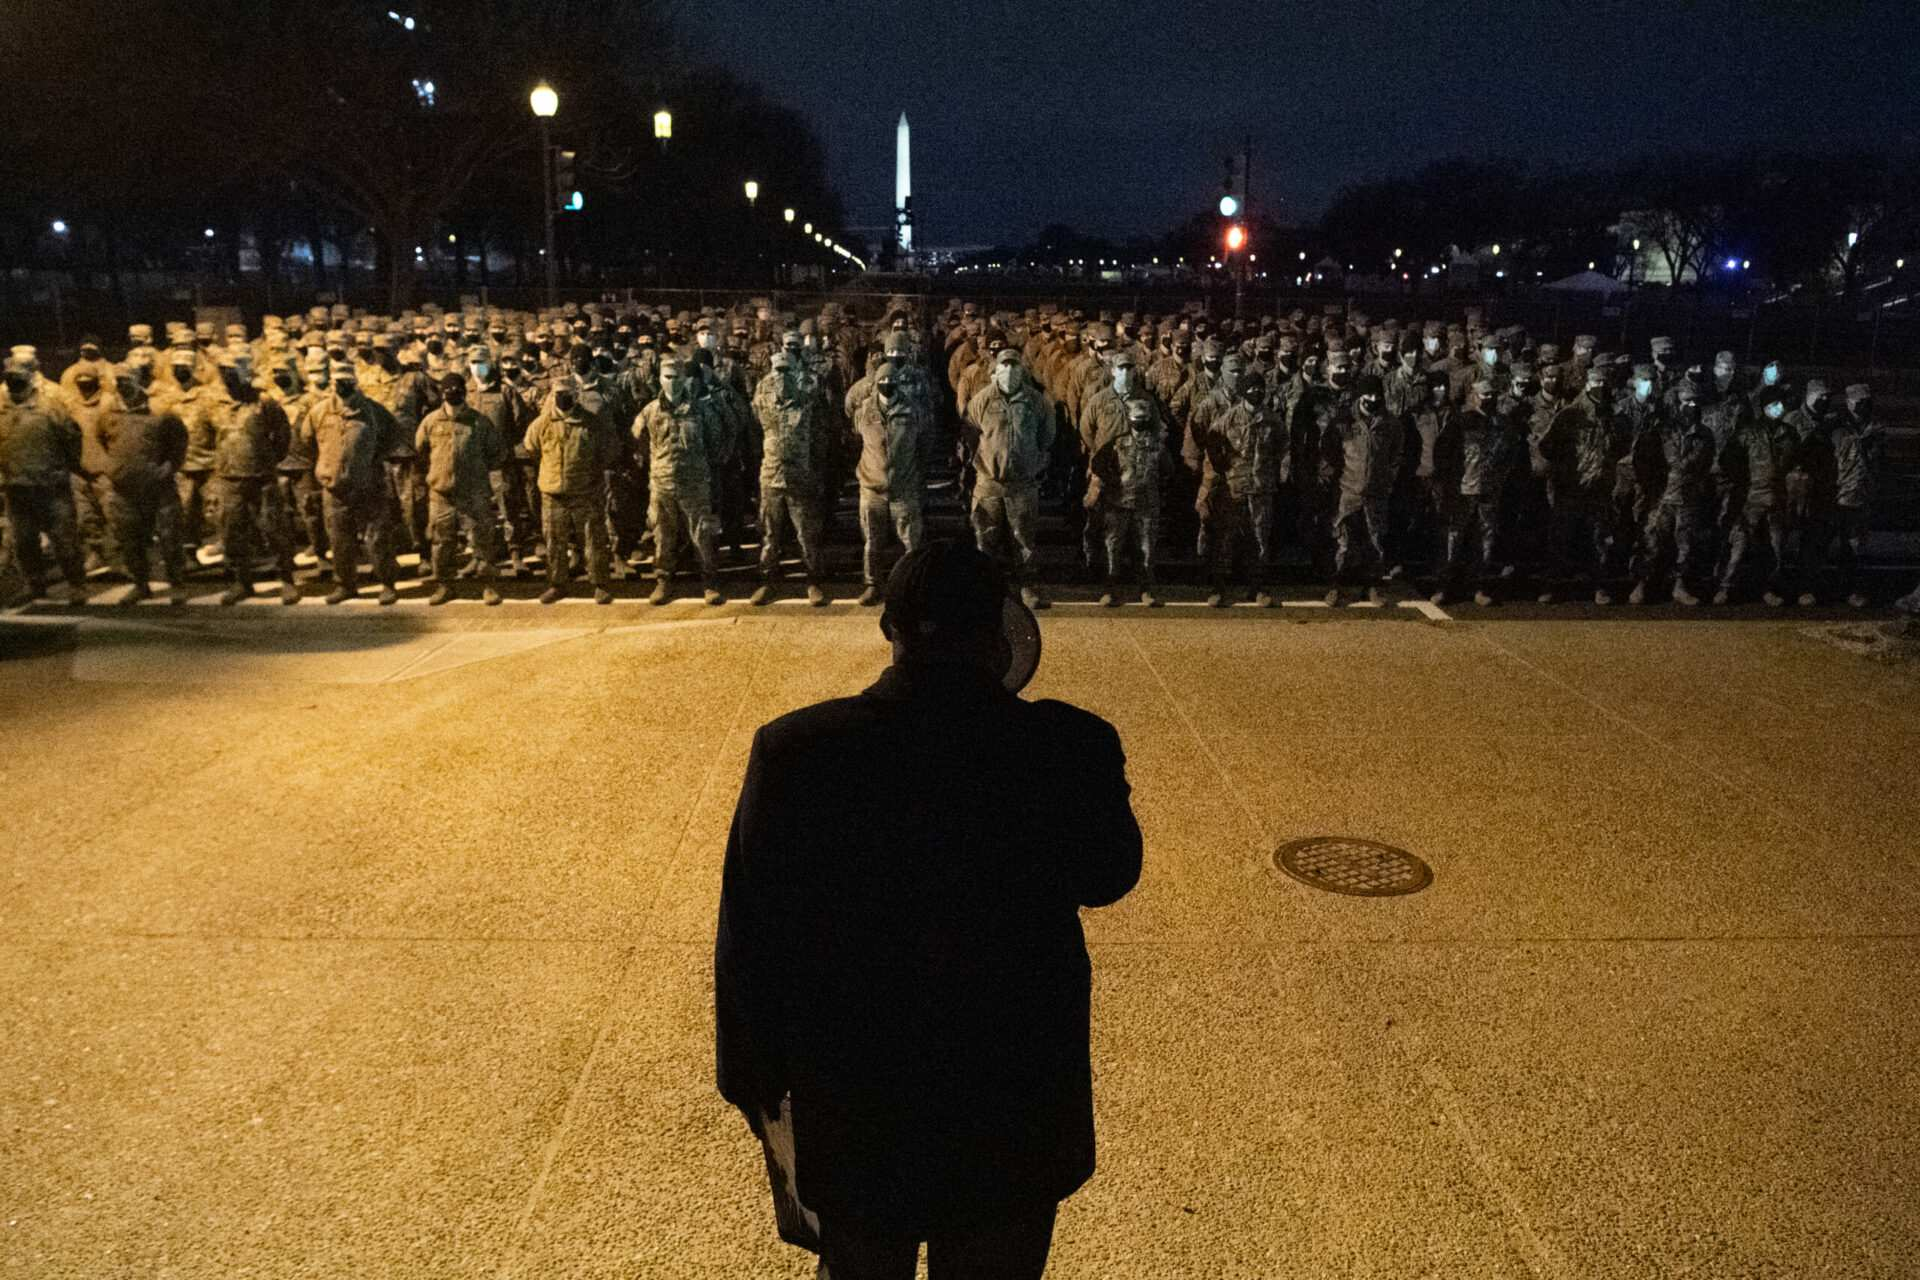 Pics: US Marshals deputize 2,000 troops for Biden inauguration in front of Washington Monument